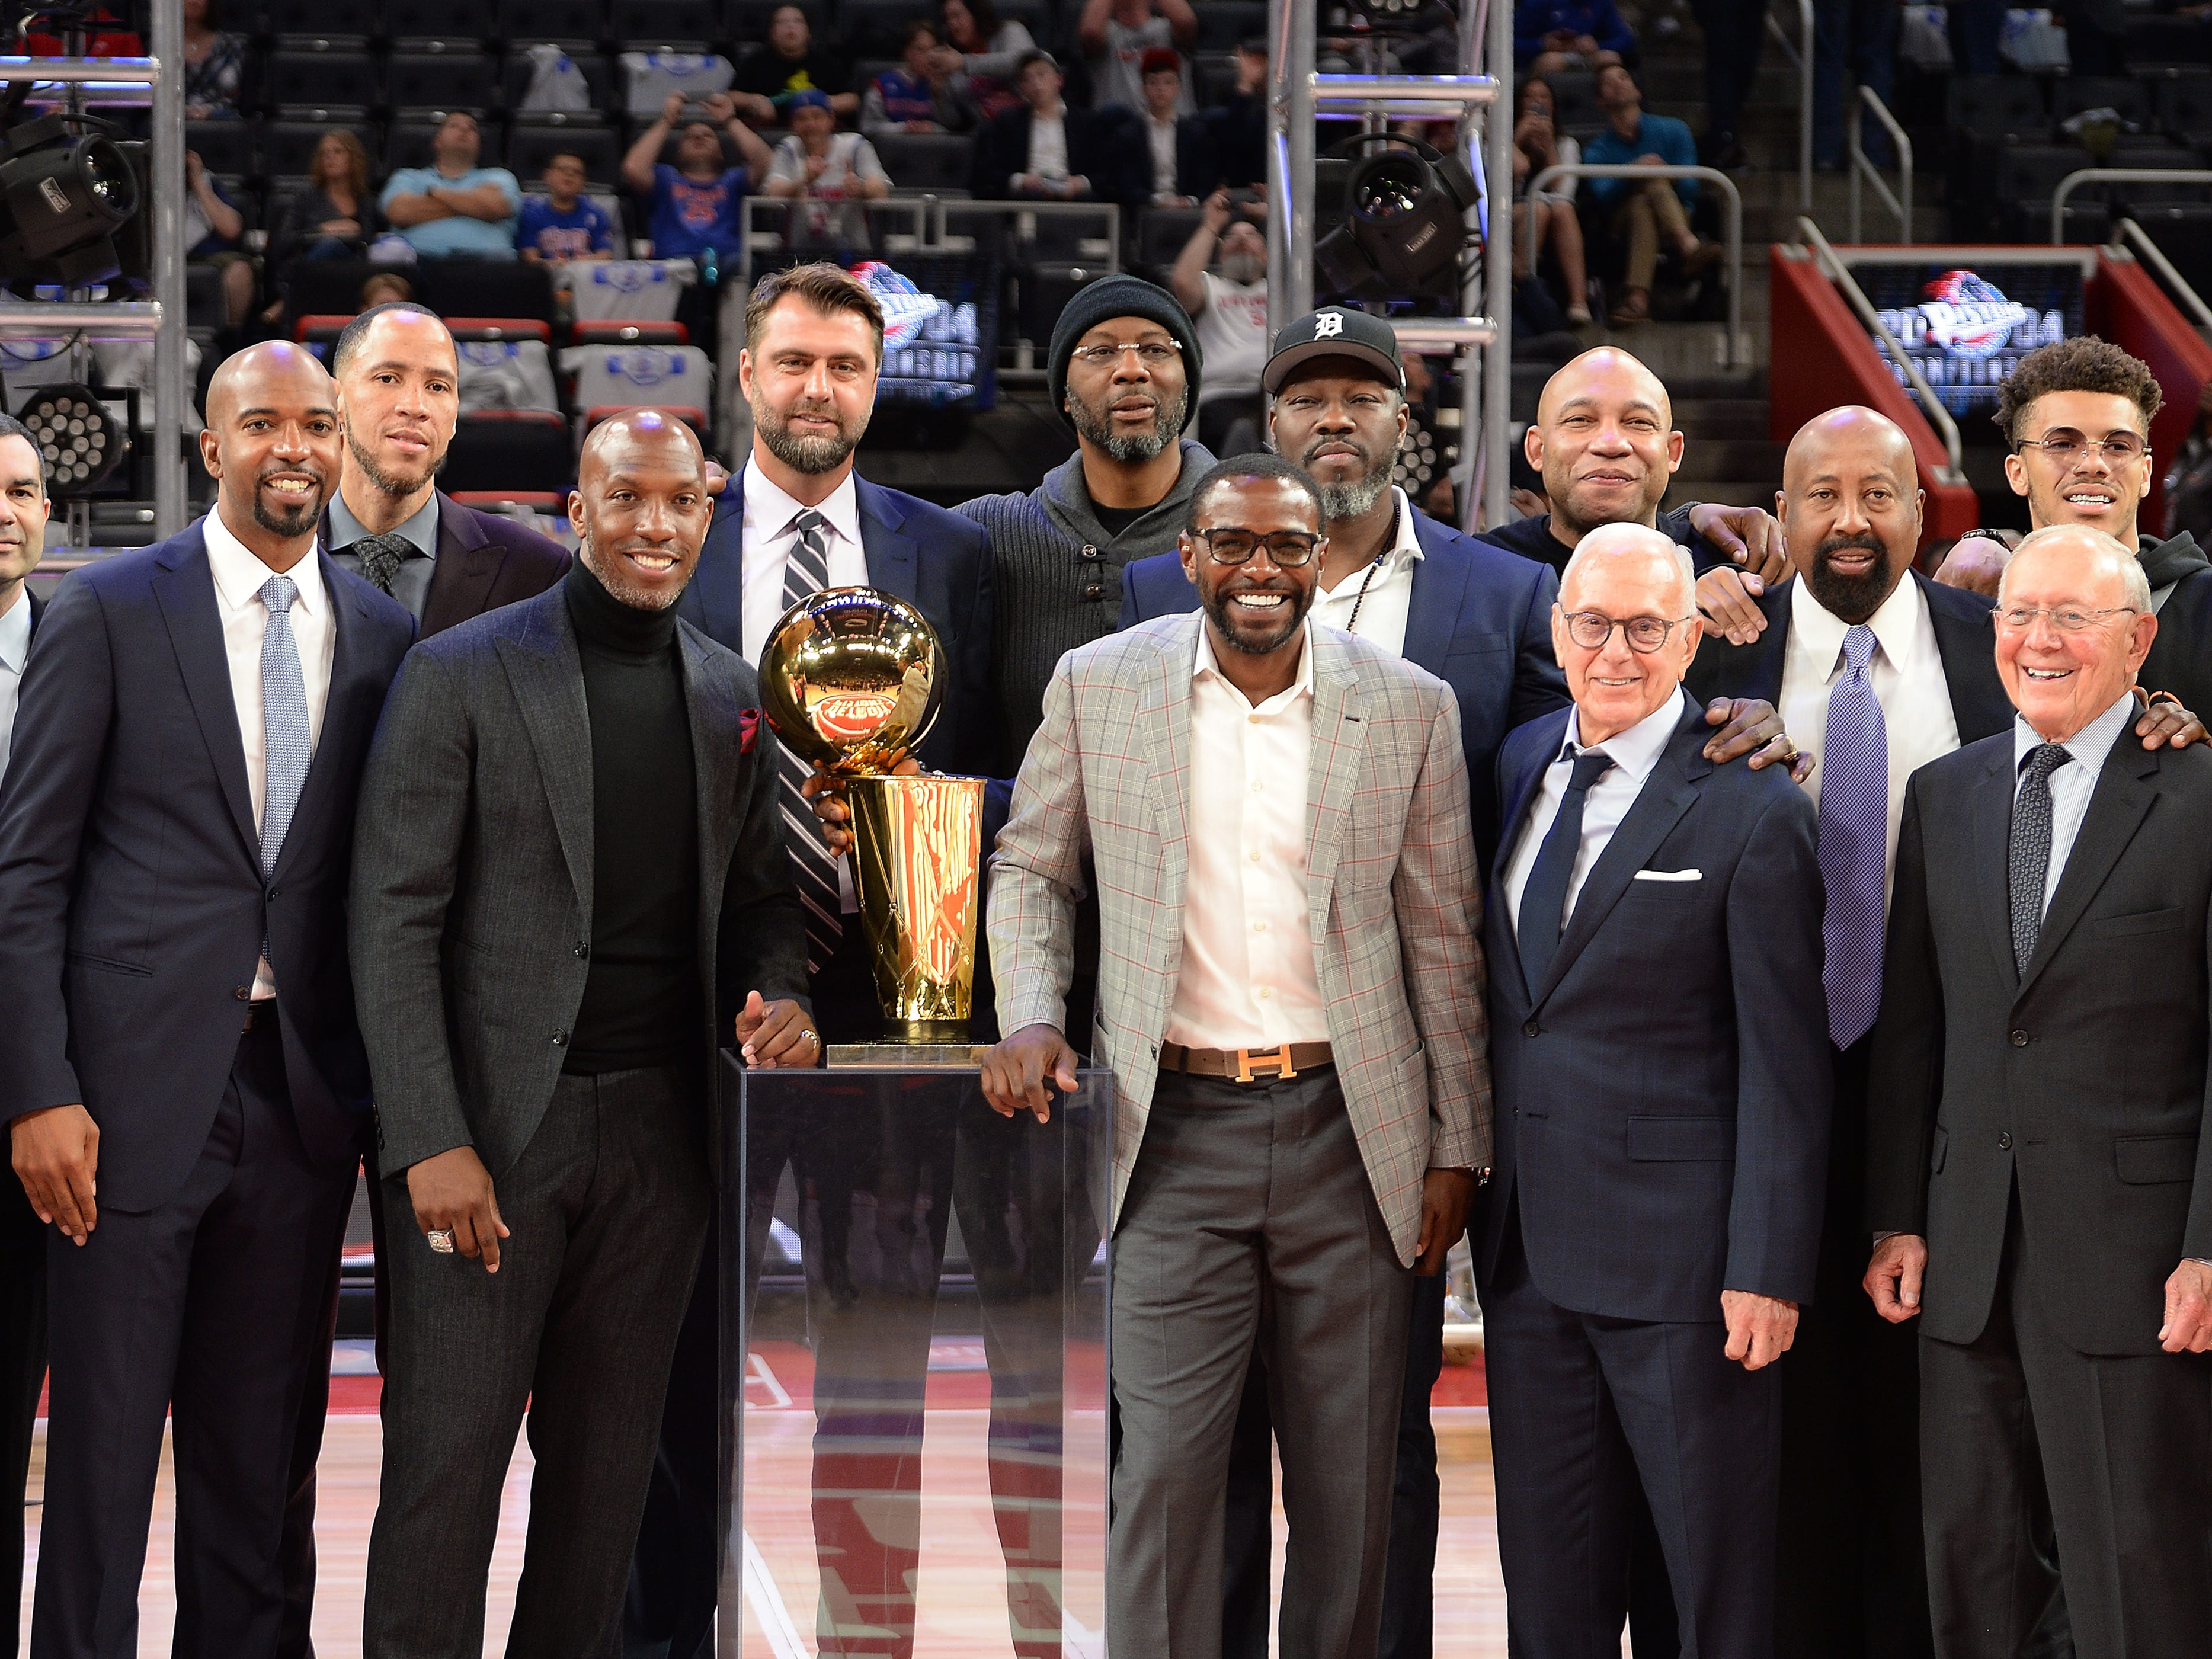 Members of the 2004 Championship team pose for a photo at the end of the ceremony that honored  the team.